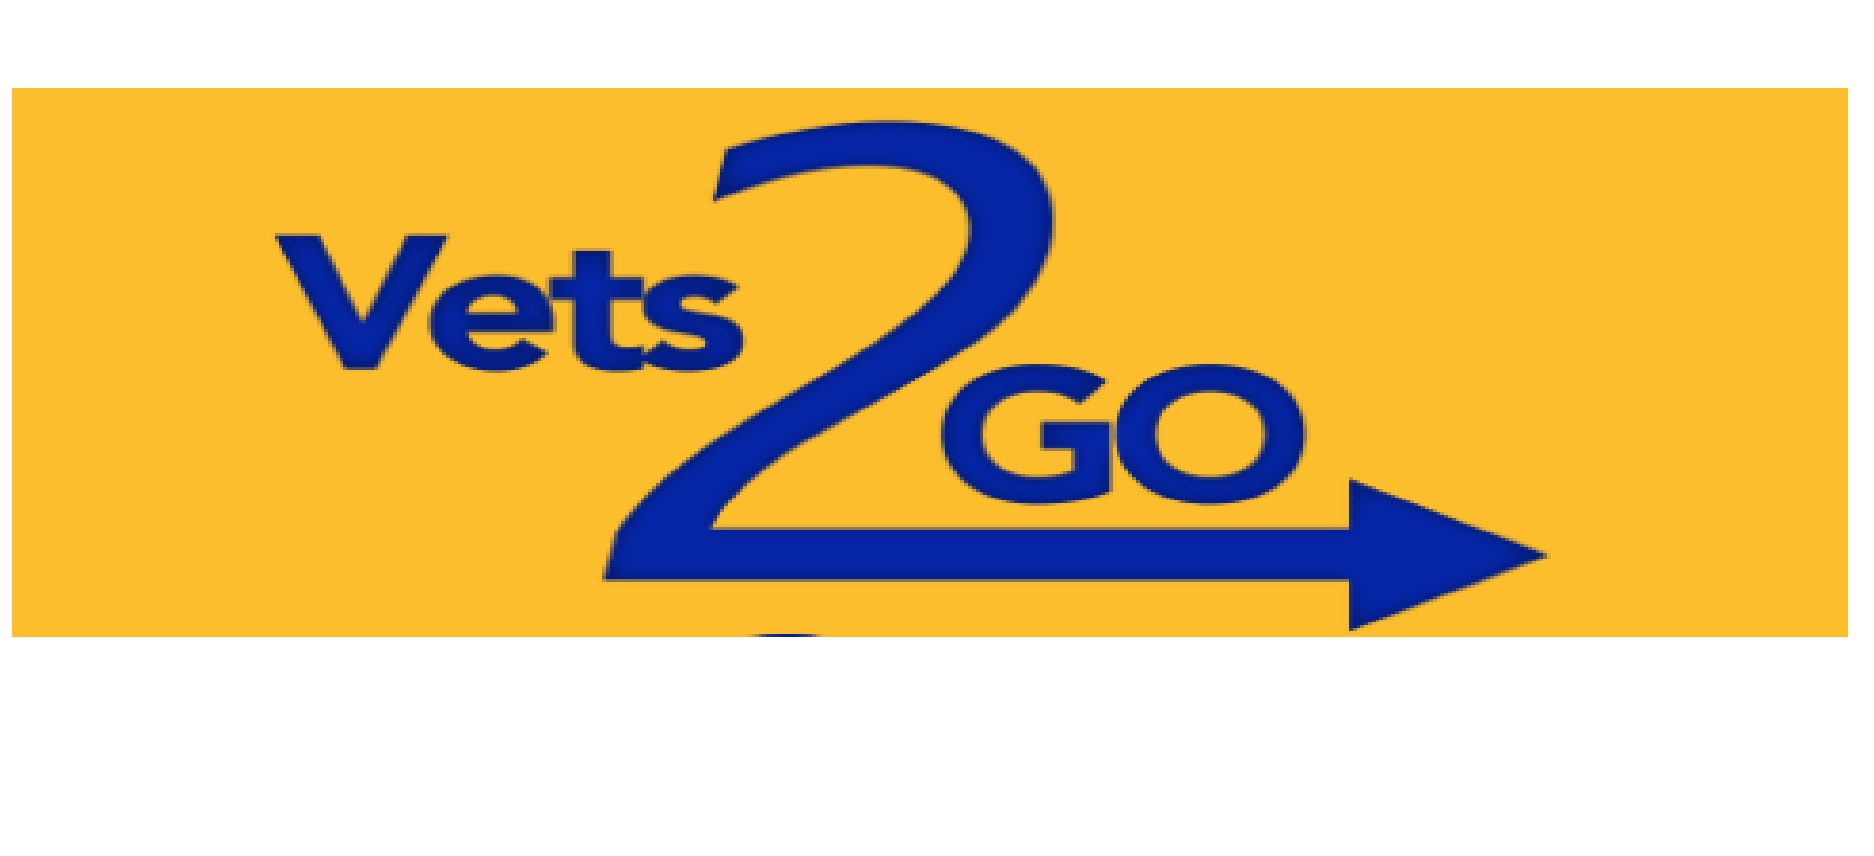 http://www.vets2go.co.uk/pgs/index.php logo